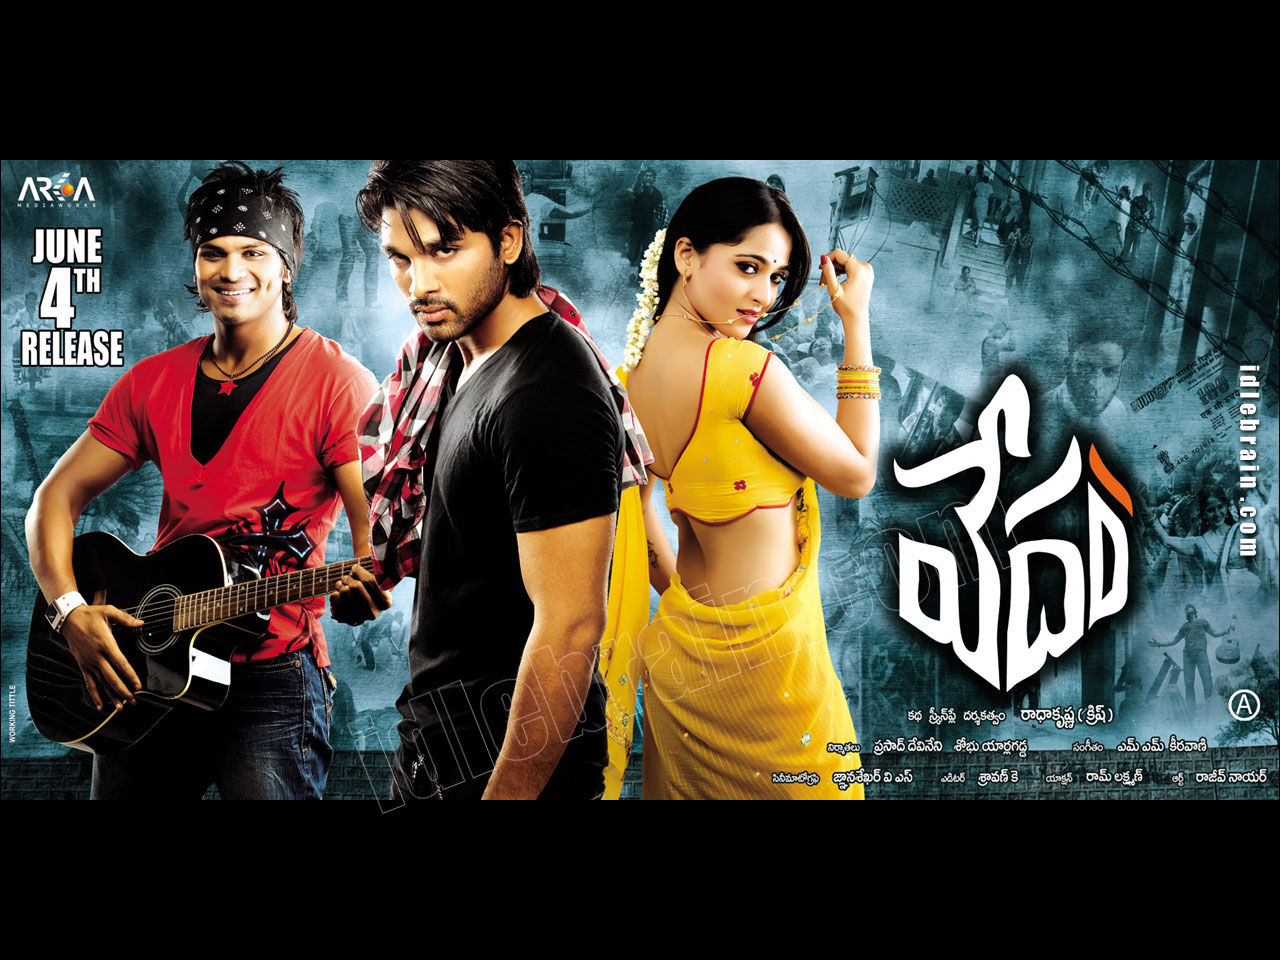 Vedam - Telugu film wallpapers - Telugu cinema